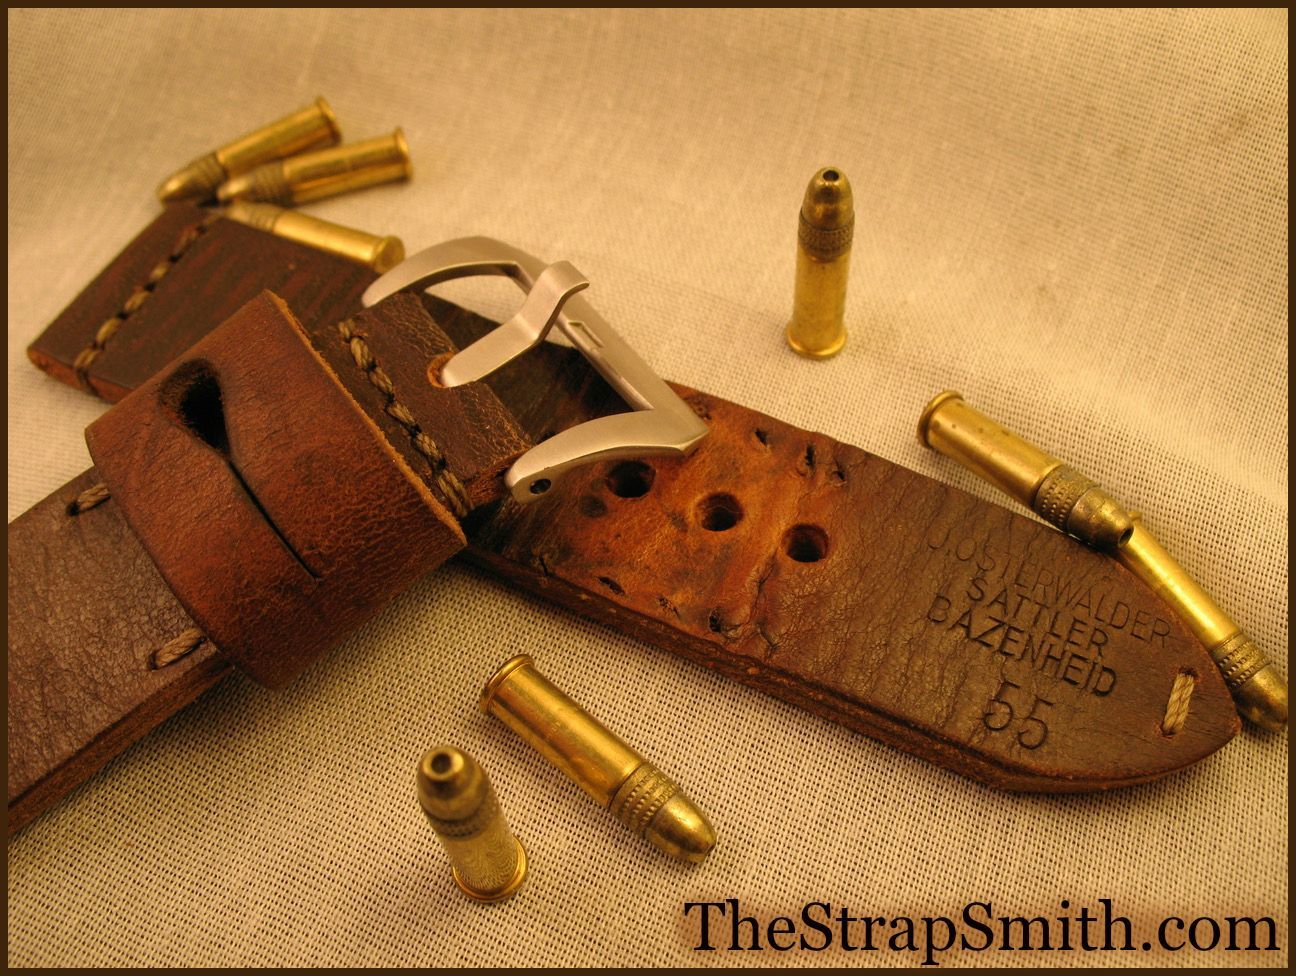 These have been through the trenches and back!  #vintage #military #character #heritage #thestrapsmith #handbuilt